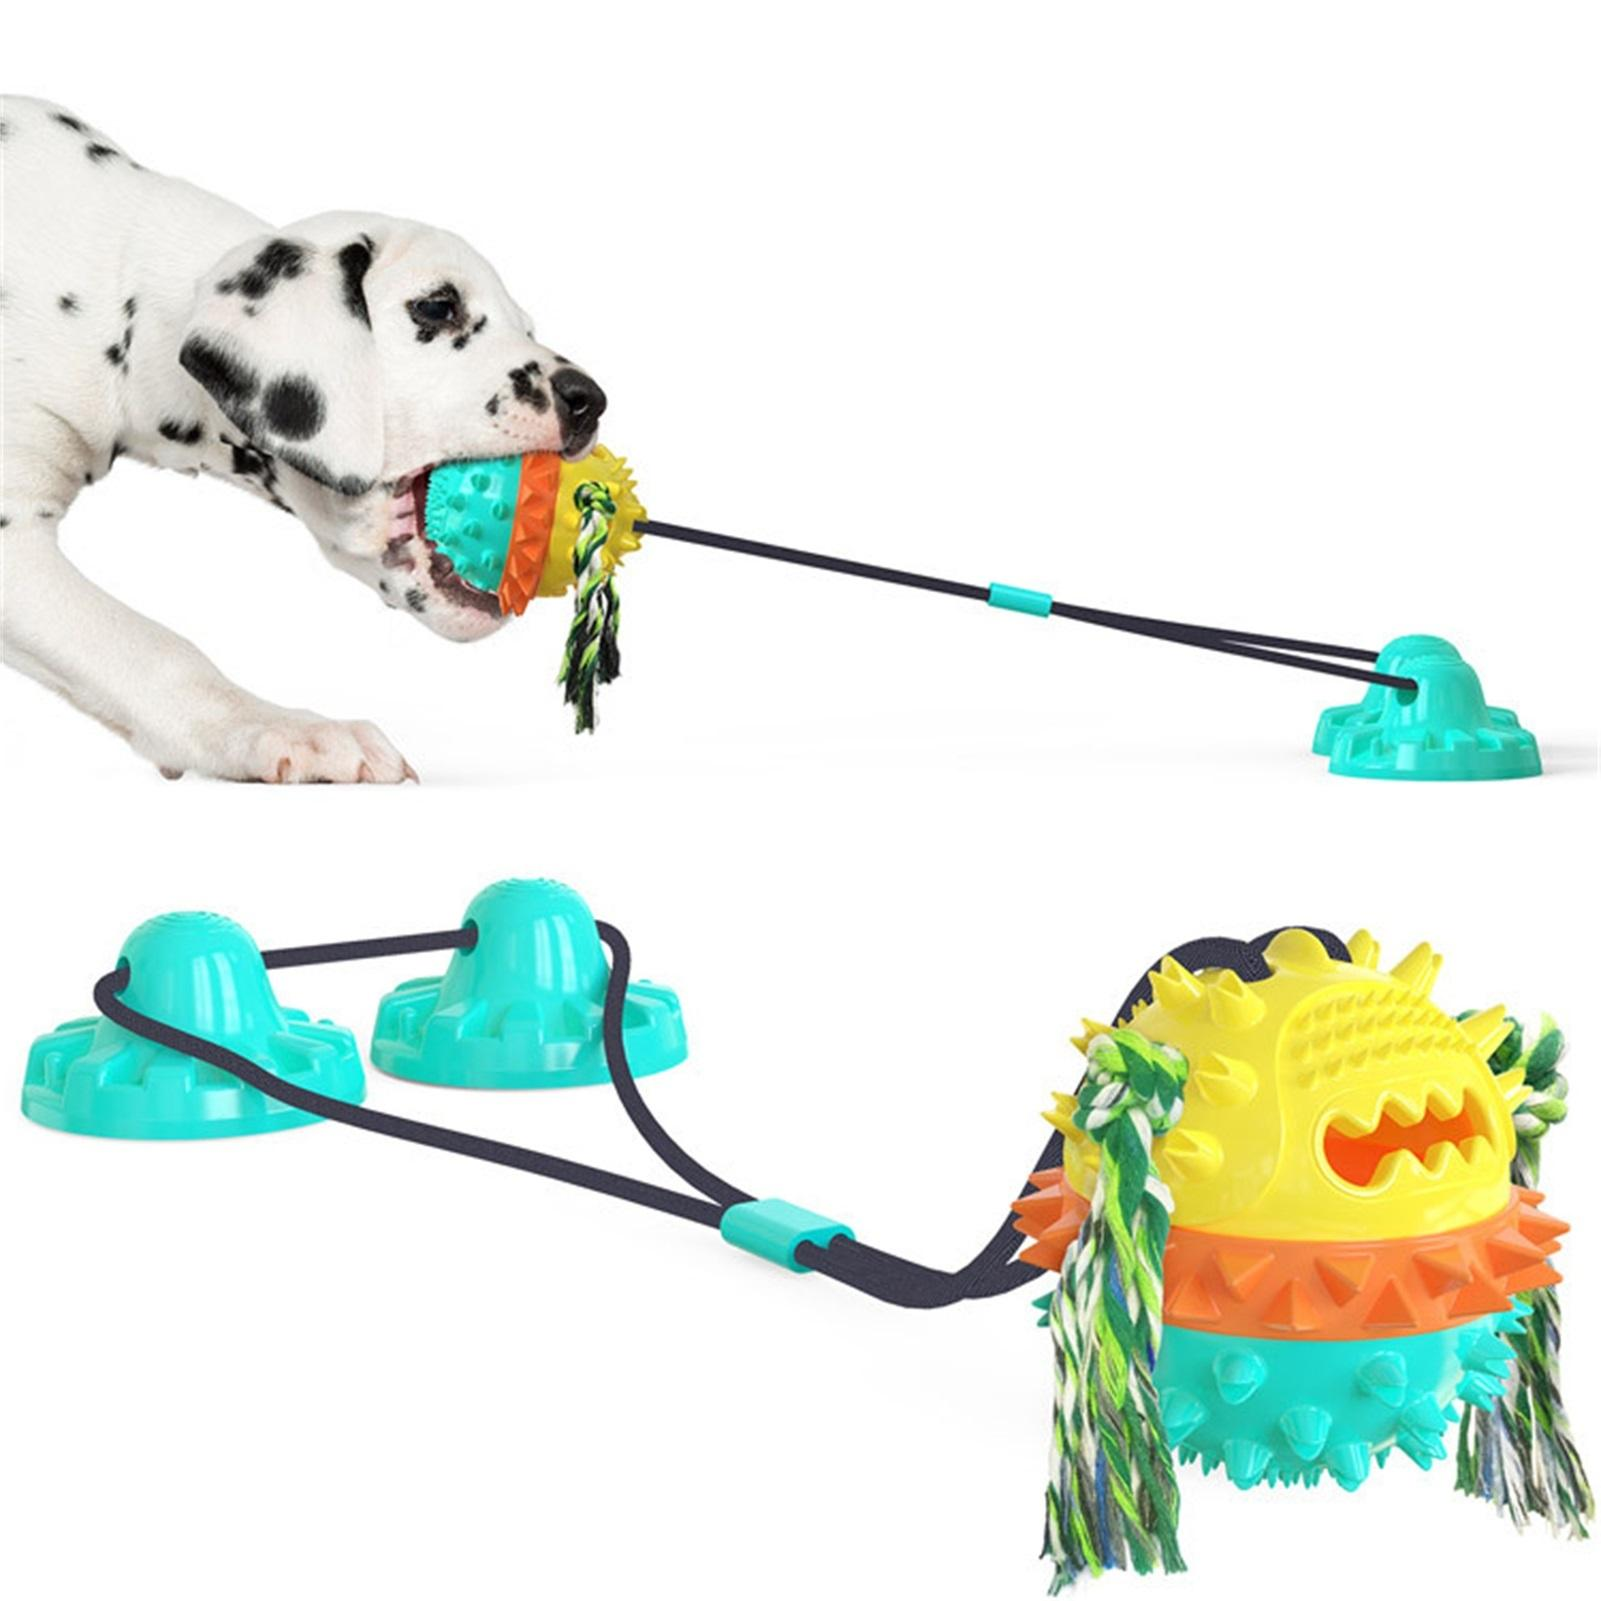 Pet Dog bowl molar ball with Durable Rope and Suction Cup Molars Bite Toy Pulling/Chewing/Teeth Cleaning Self Playing Tog for Dogs